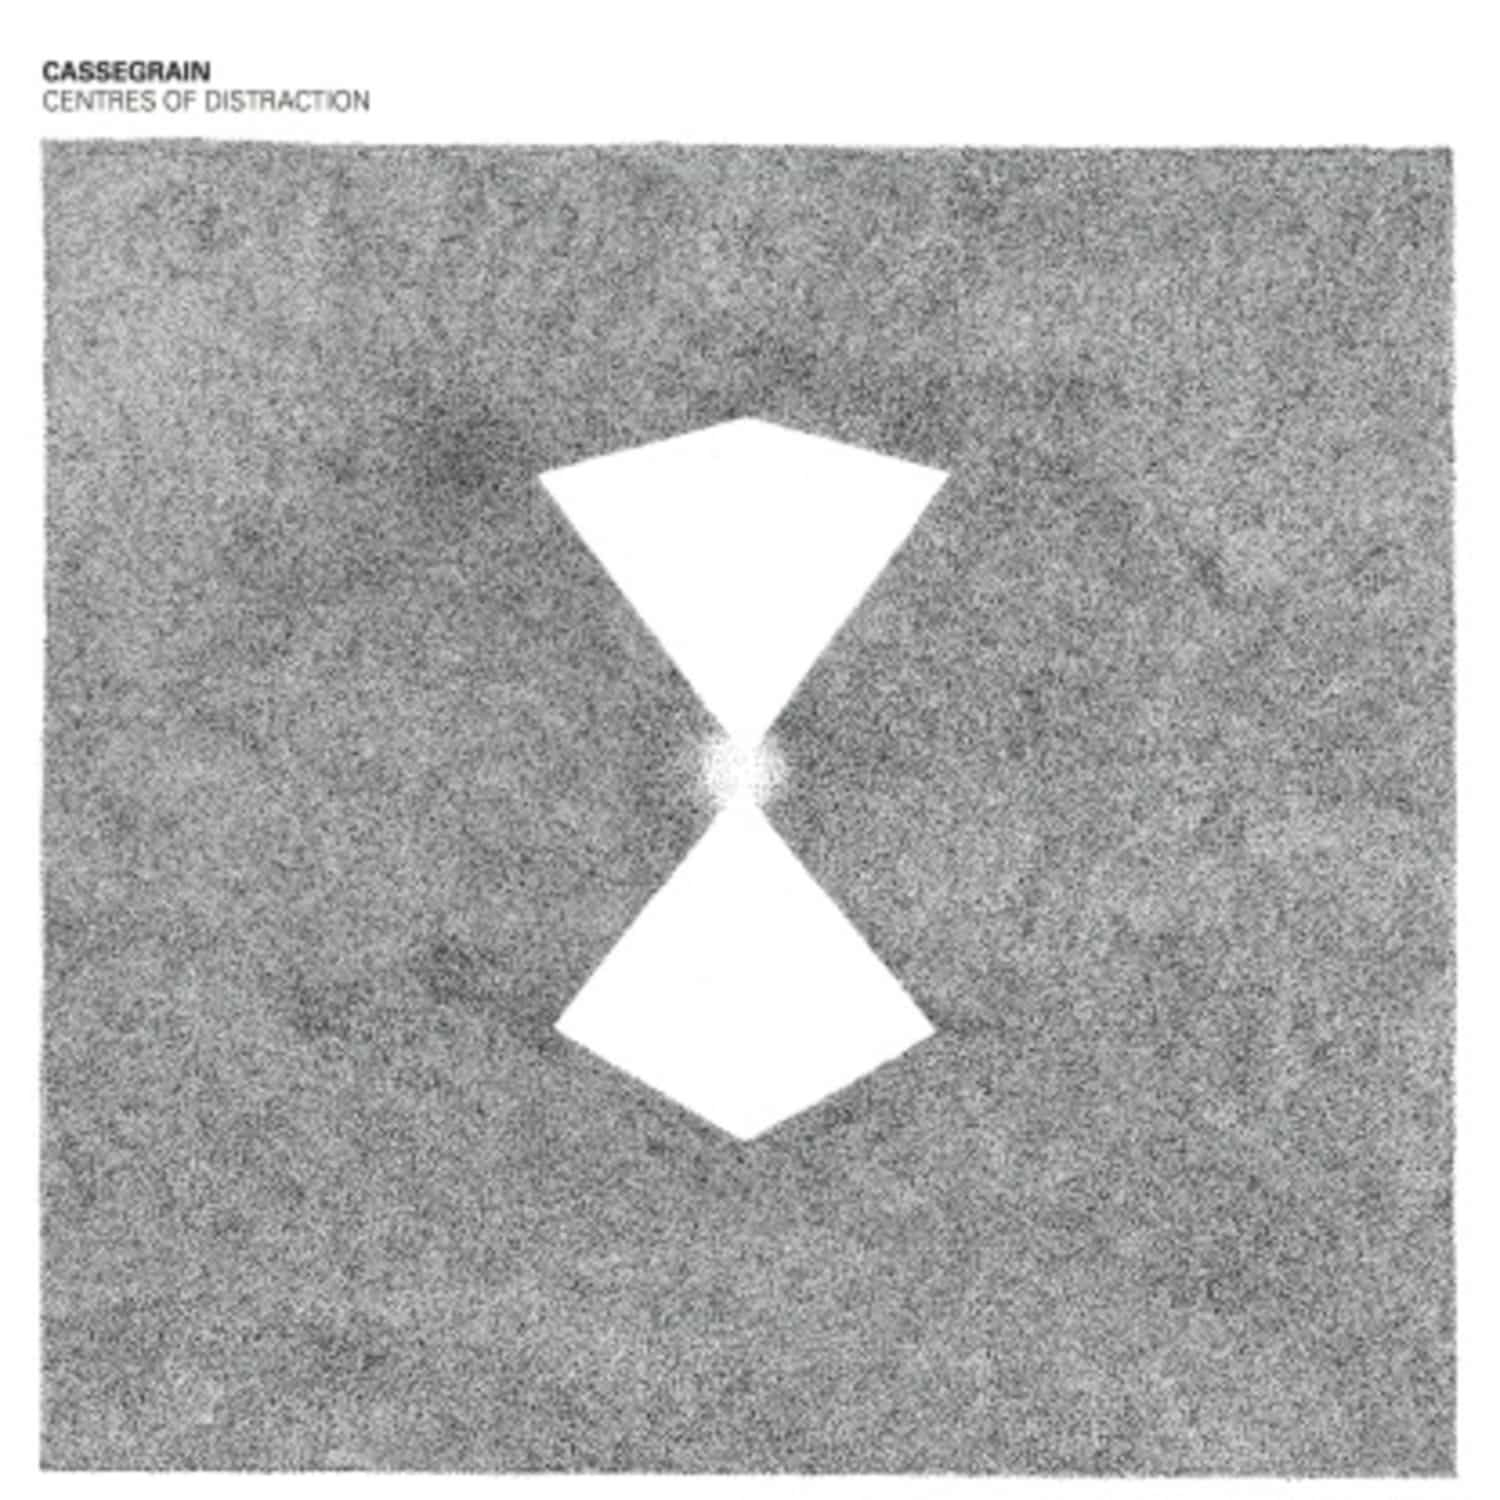 Cassegrain - CENTRES OF DISTRACTION